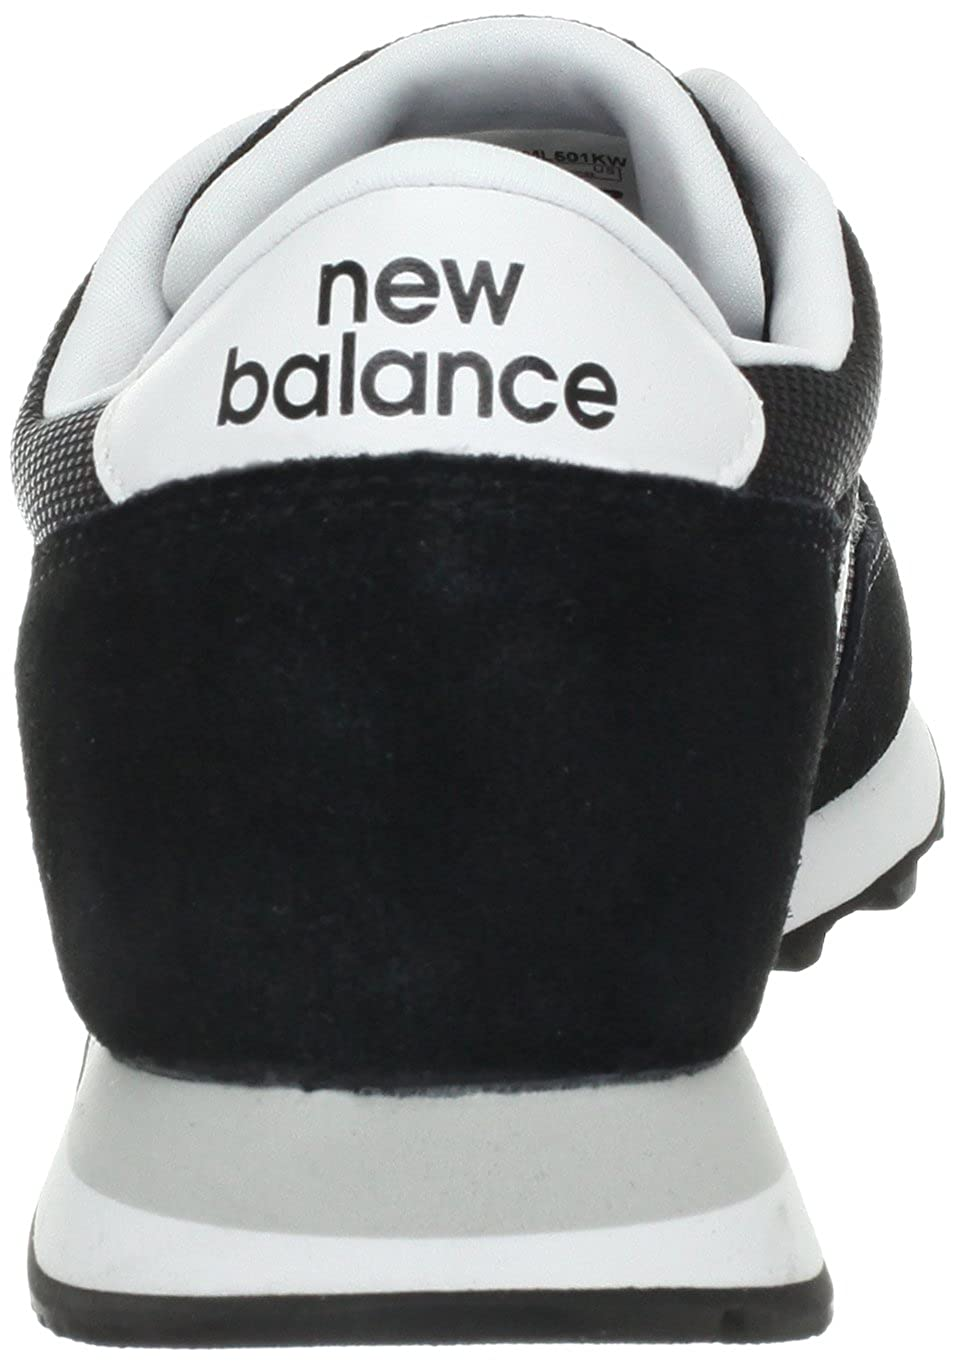 New Balance Balance Balance Classics Traditionnels grau Weiß Mens Trainers - ML501GGW  531dca